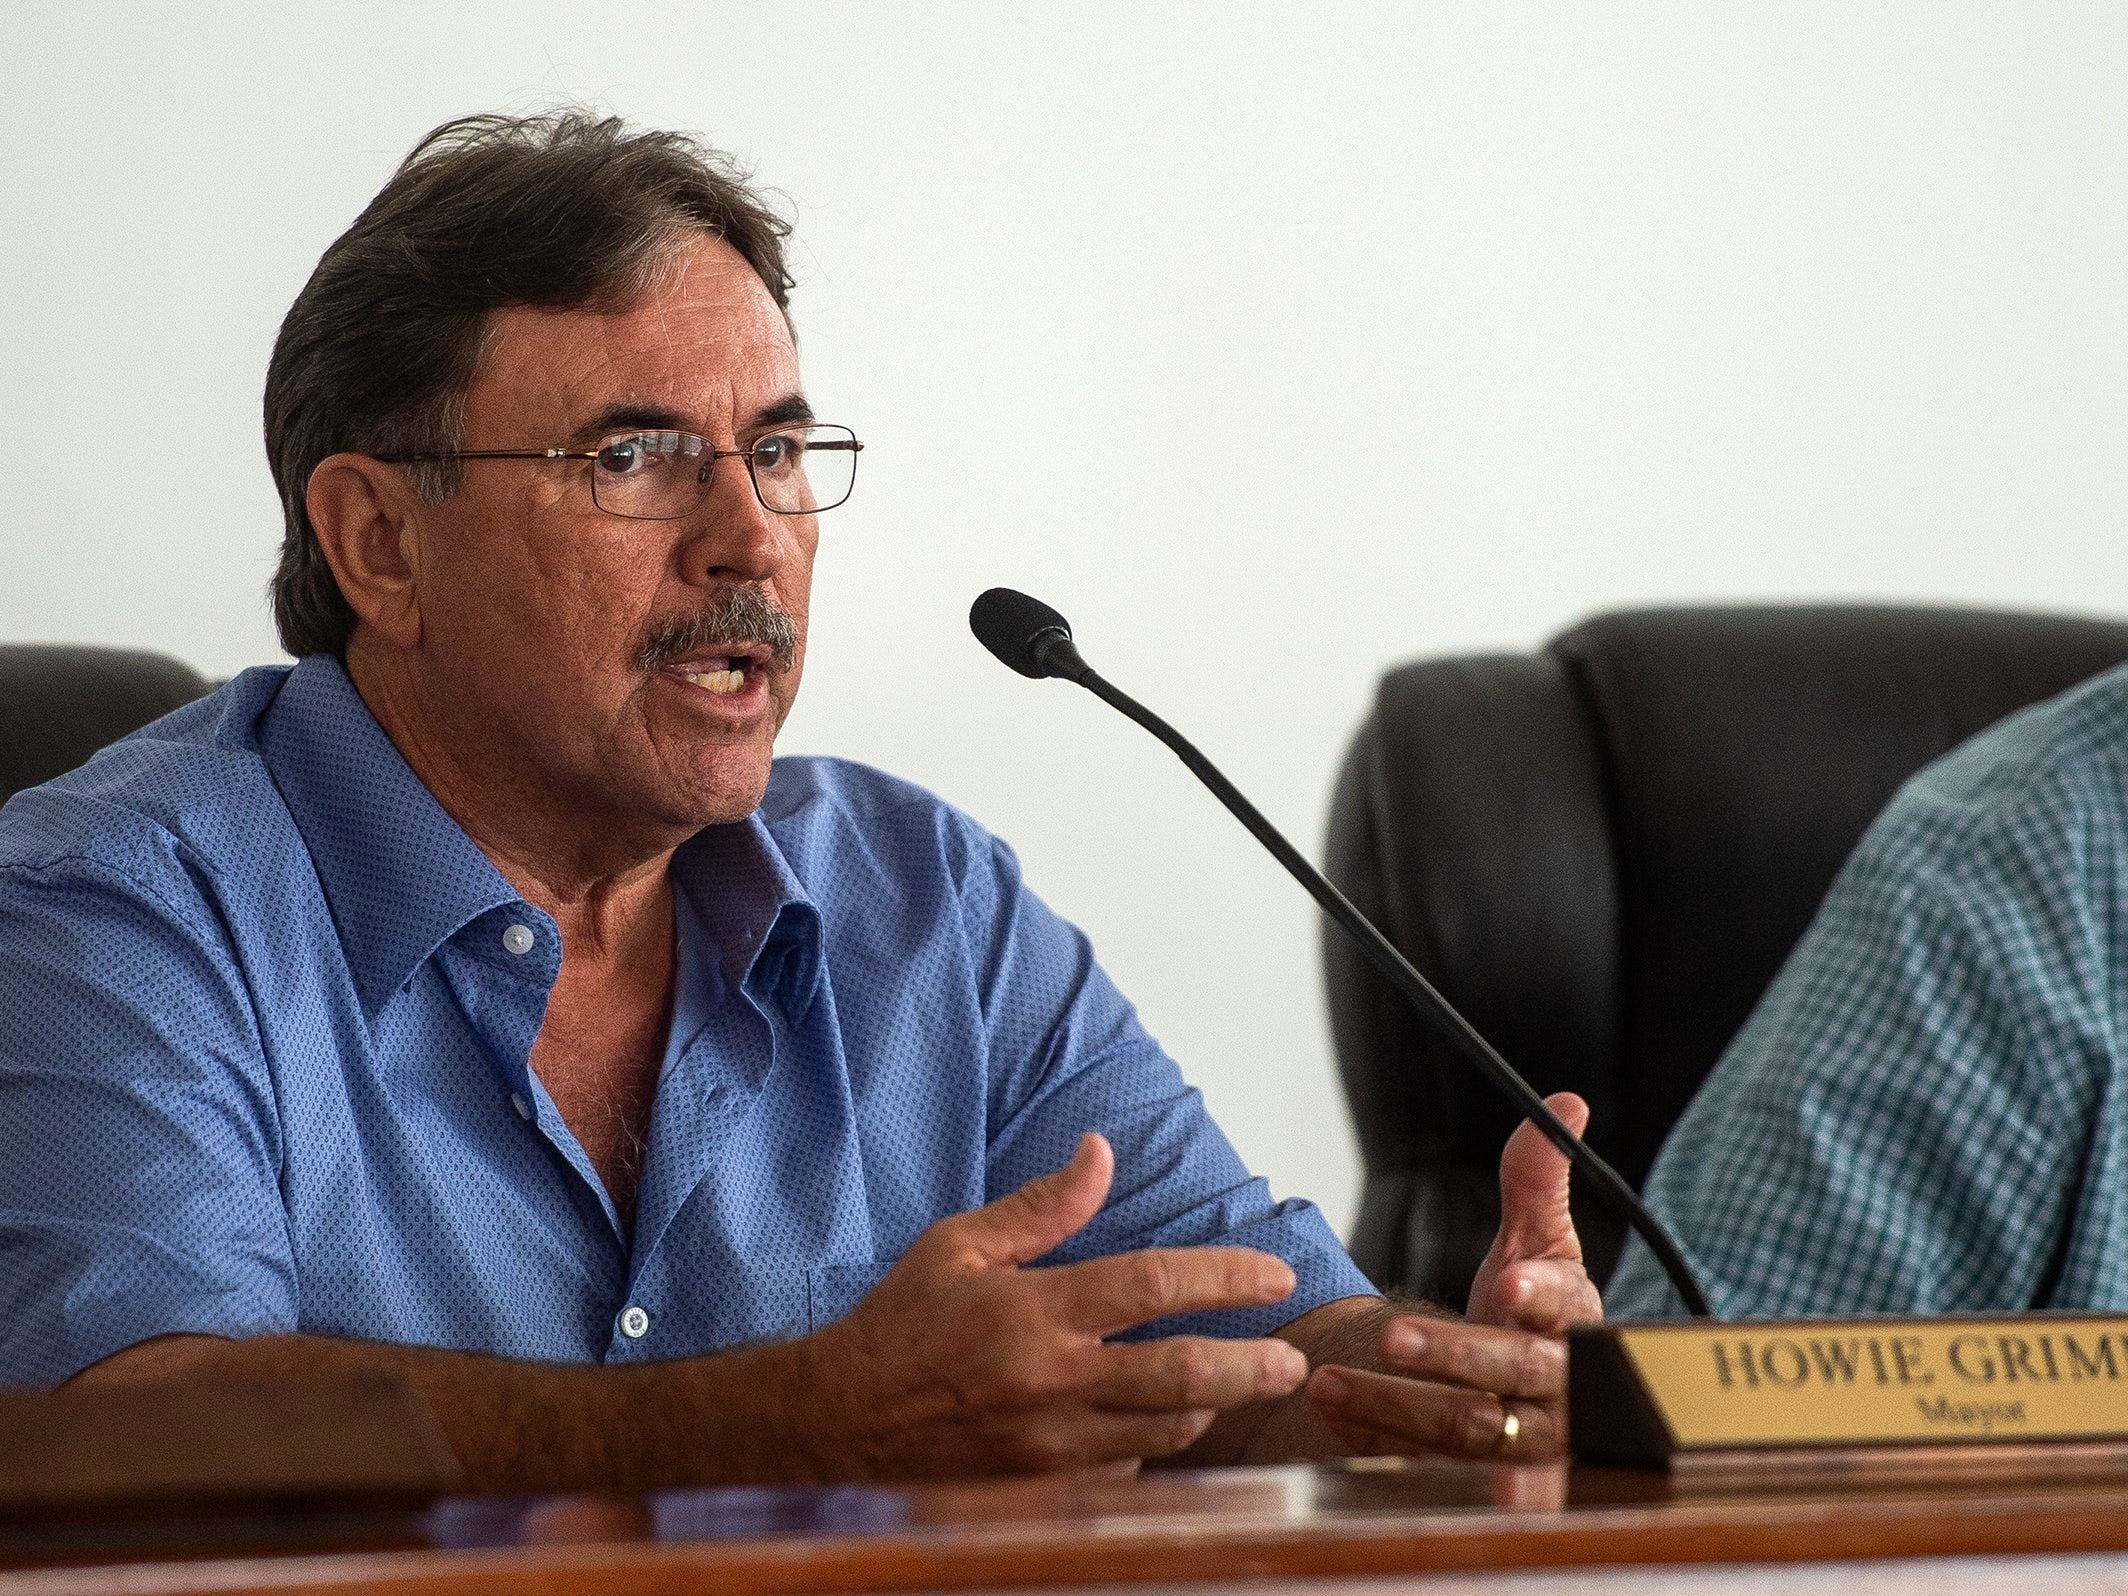 Everglades City Mayor Howie Grimm speaks during a press conference in Everglades City, Fla. on Monday, September 10, 2018. Elected officials took a tour of Everglades City, one of the areas hardest hit by Hurricane Irma, and discuseds the continued federal role in disaster recovery one year after Hurricane Irma landed in Florida.